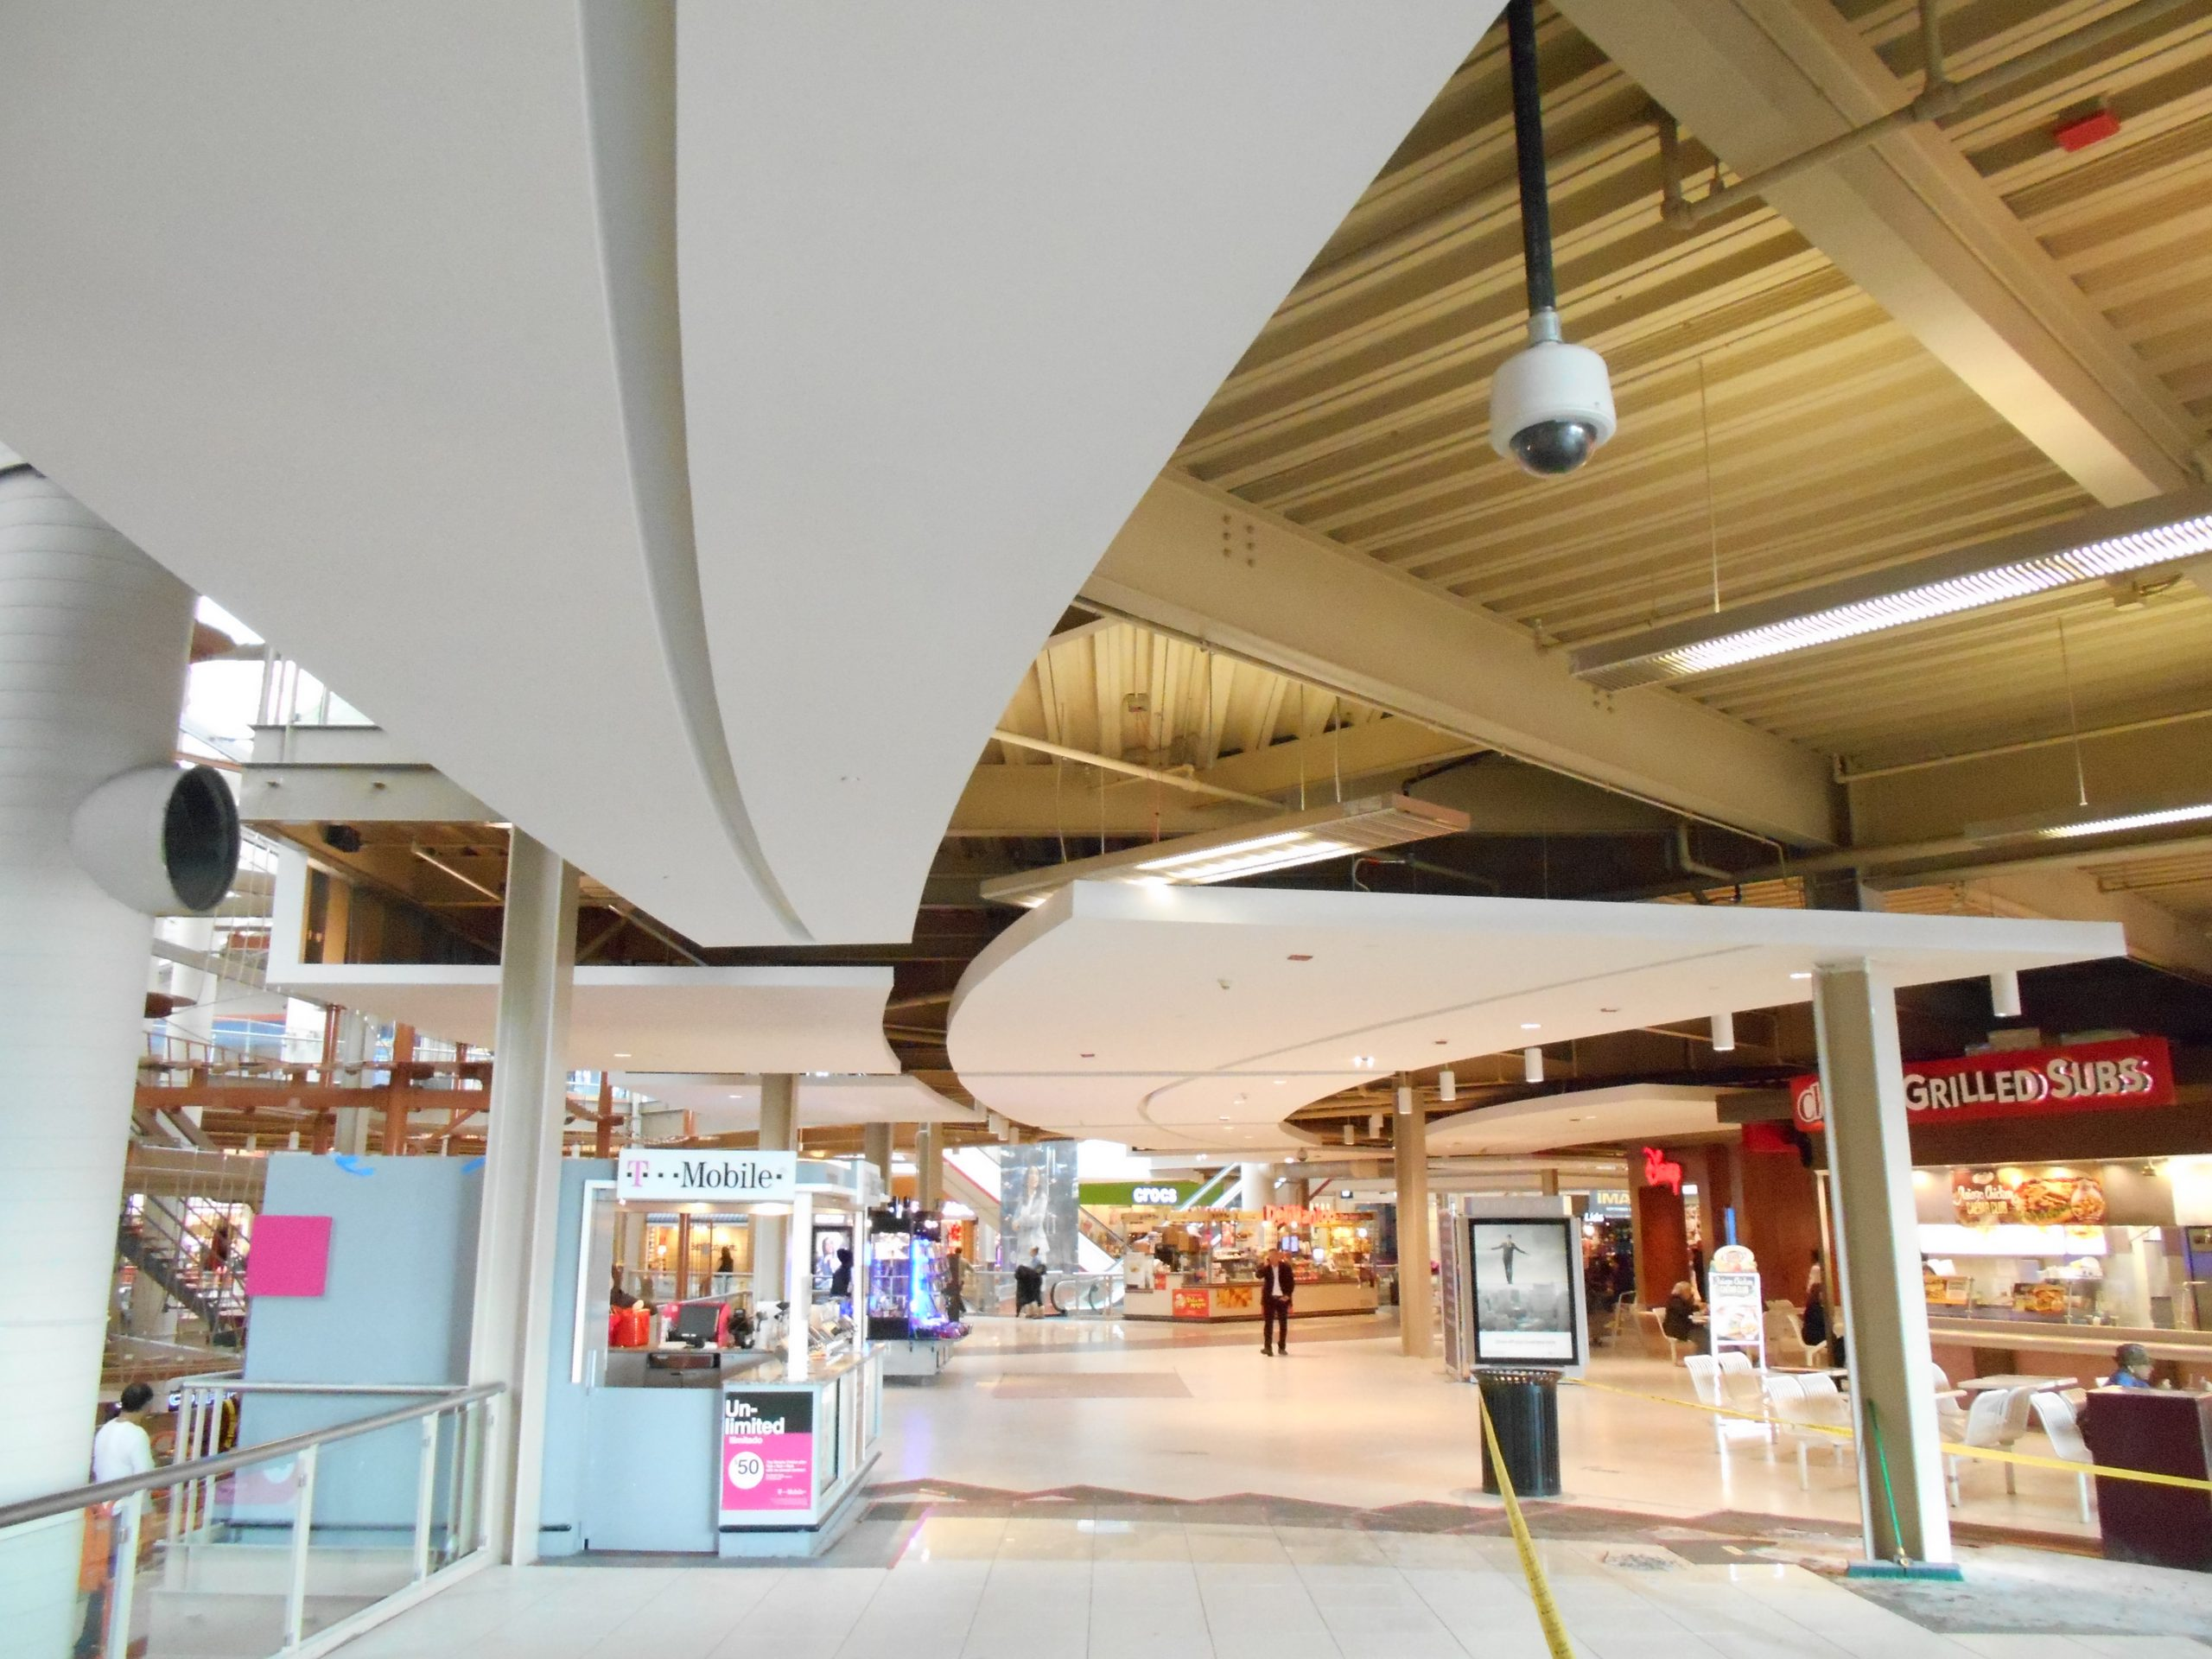 palisades mall curved ceiling clouds